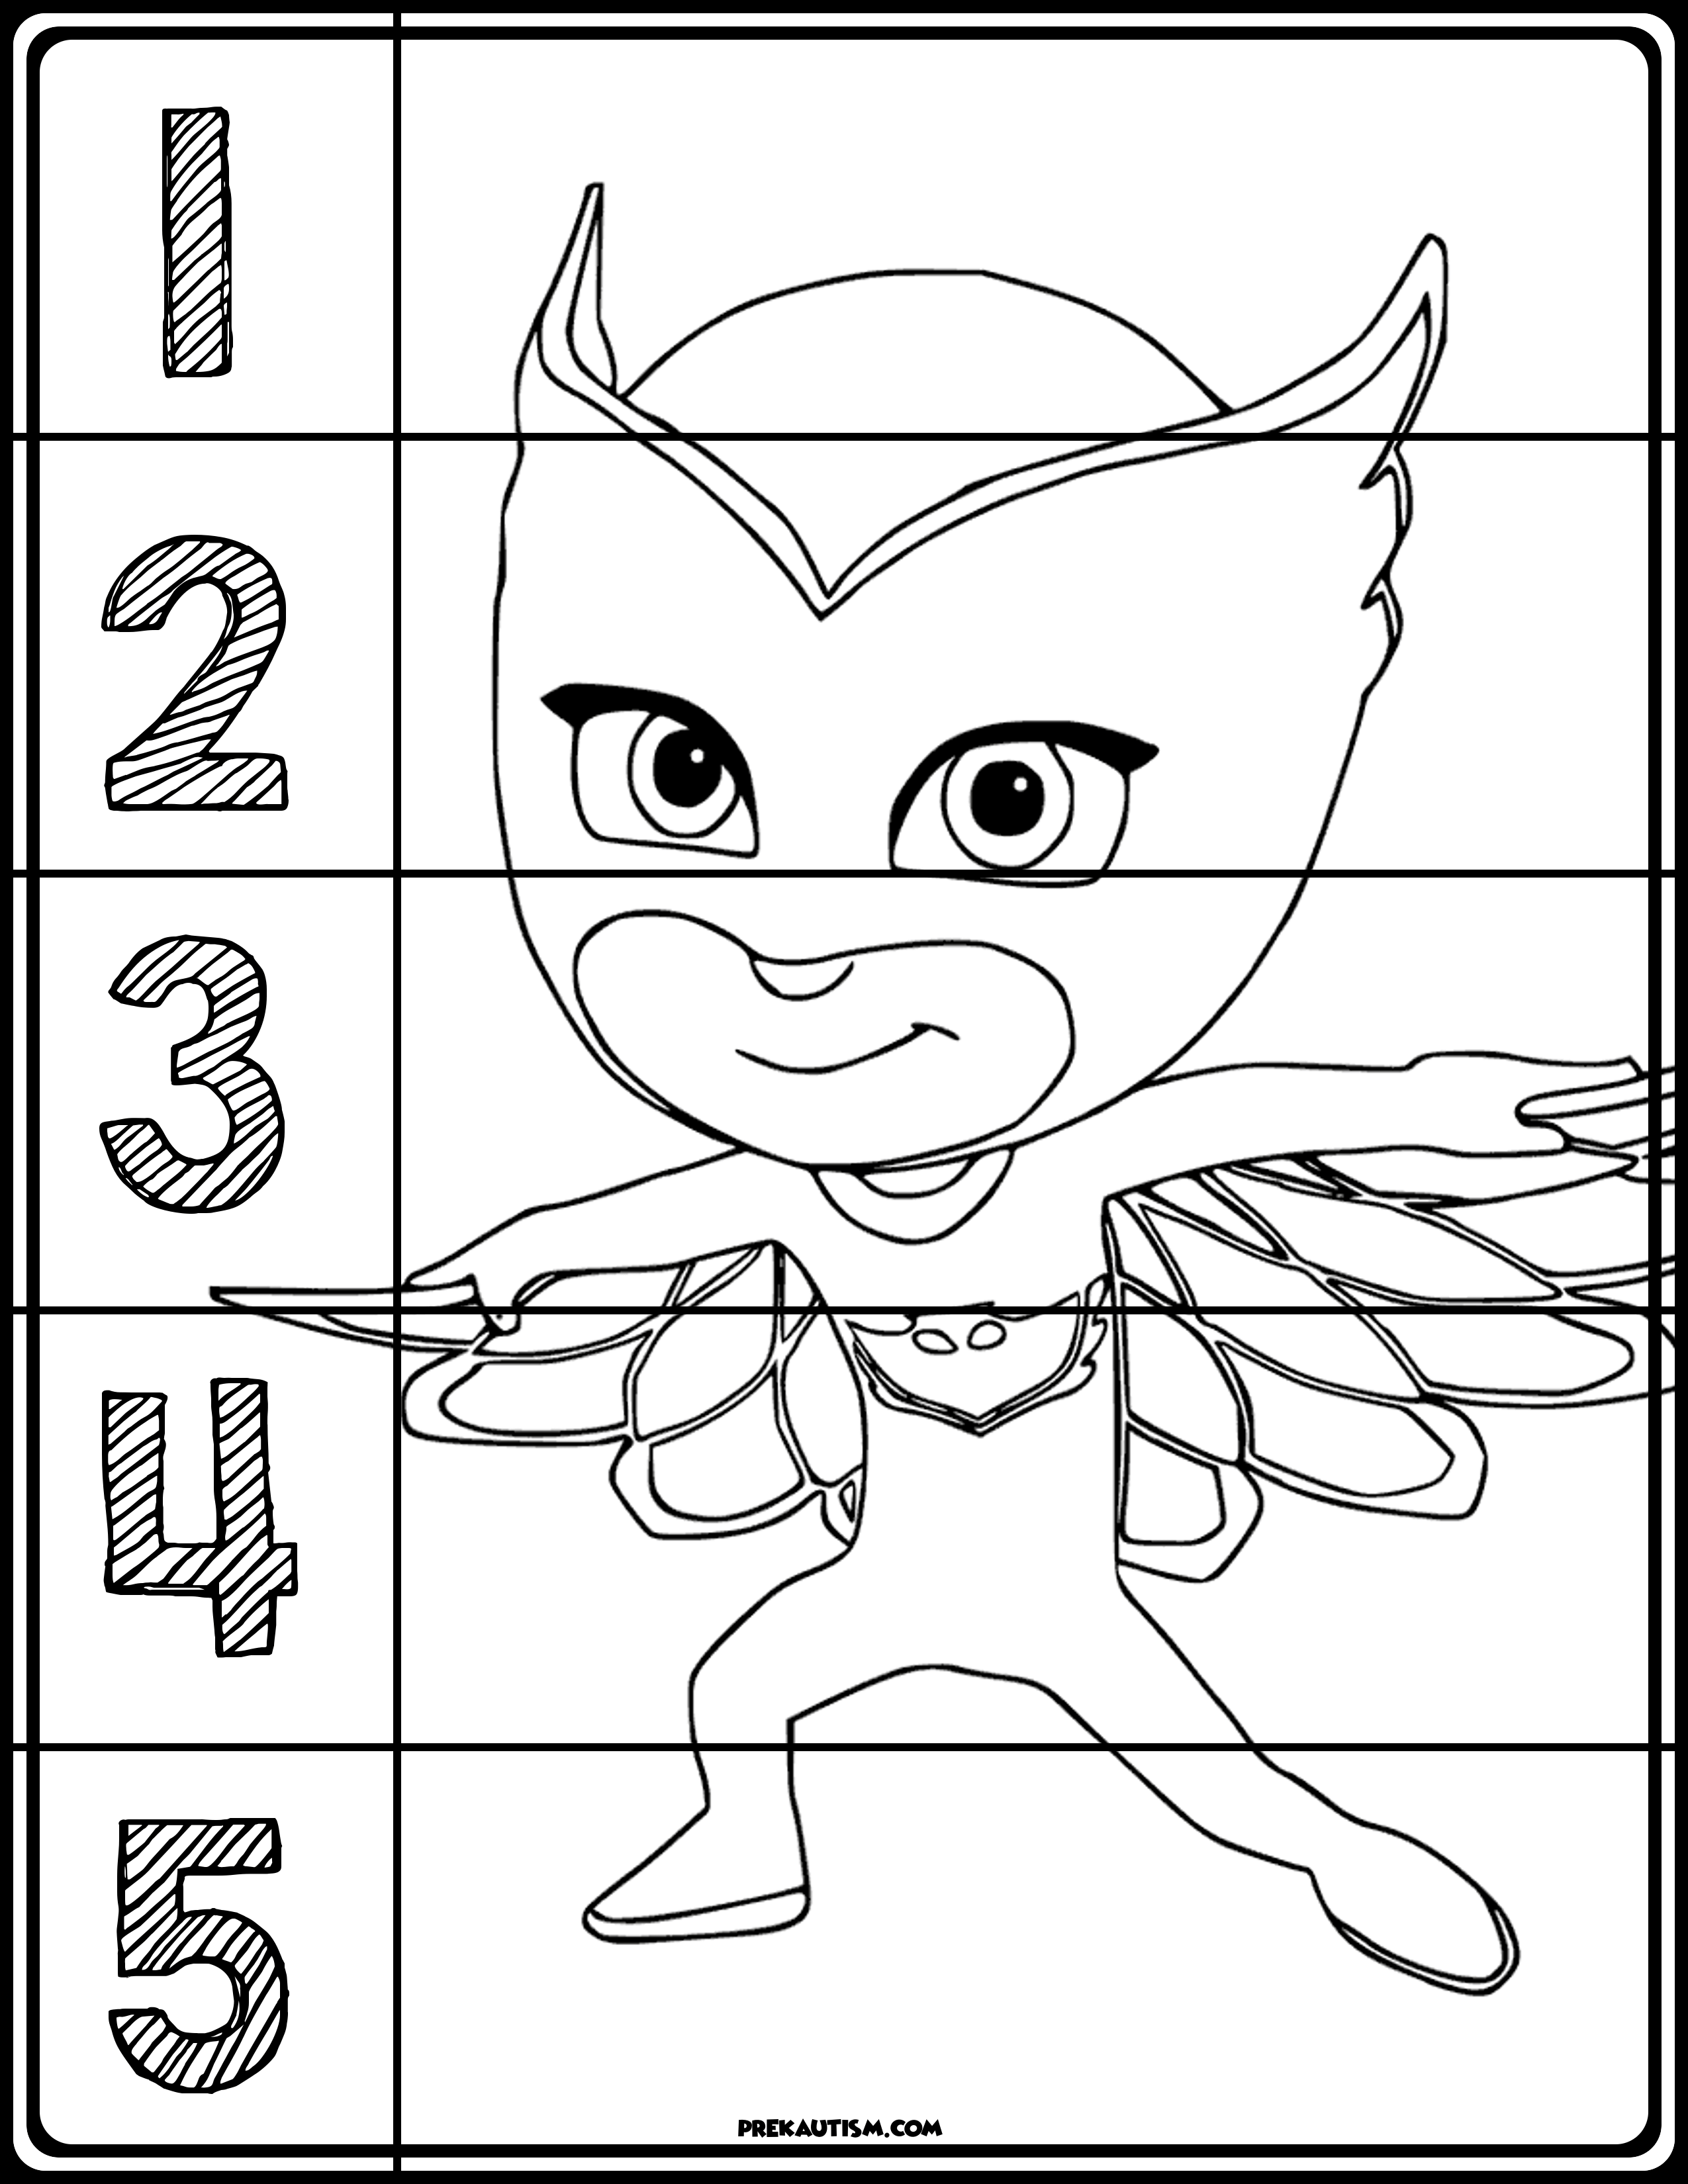 PJ Masks Coloring Number Puzzles | Number puzzles, Pj mask and ...